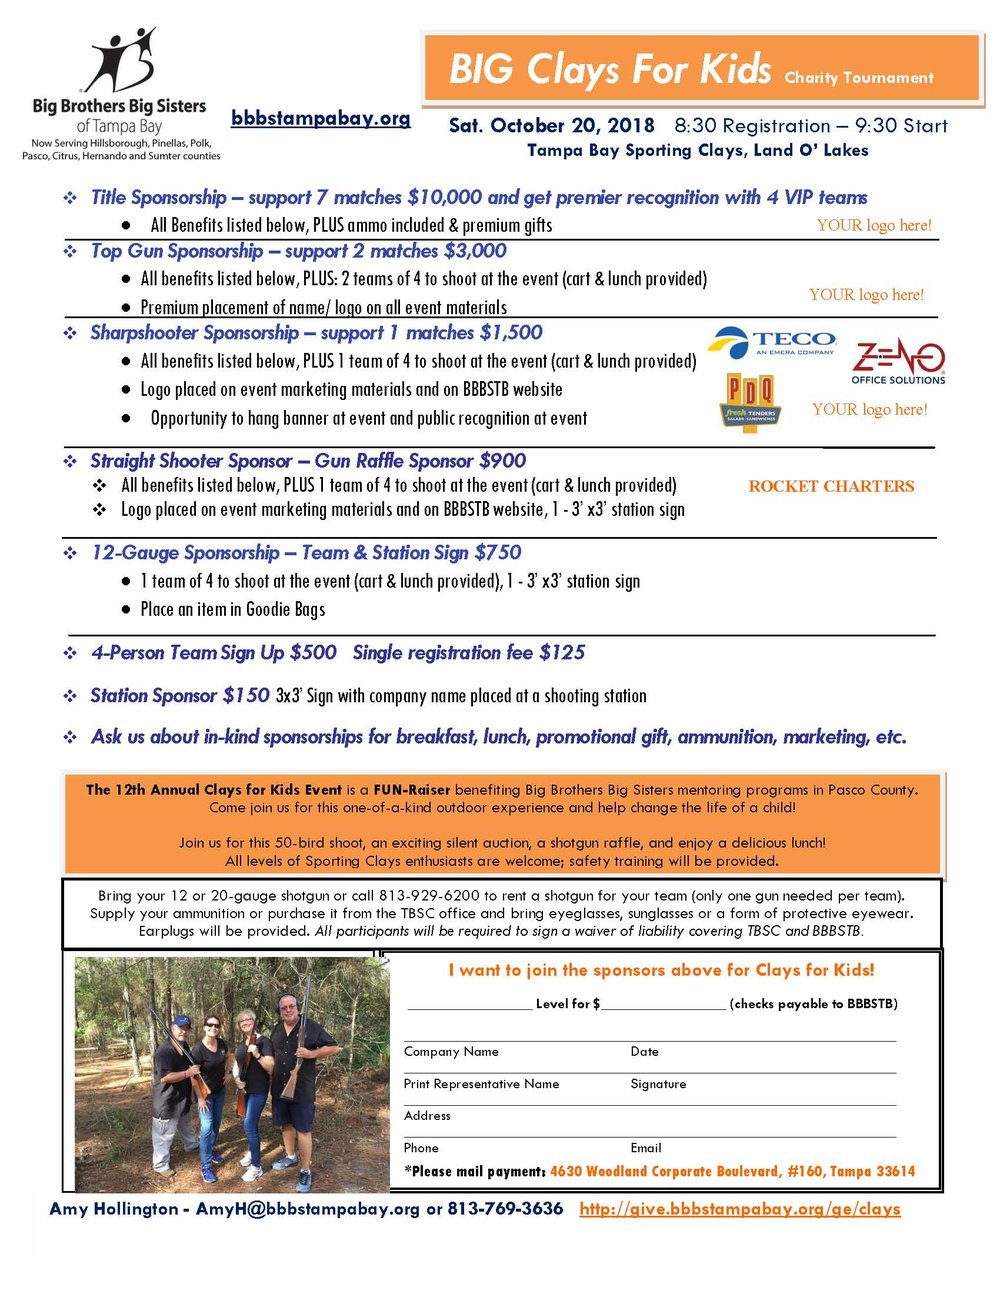 BBBS BIG Clays for Kids Sponsorship Sheet 10-20-18.jpg